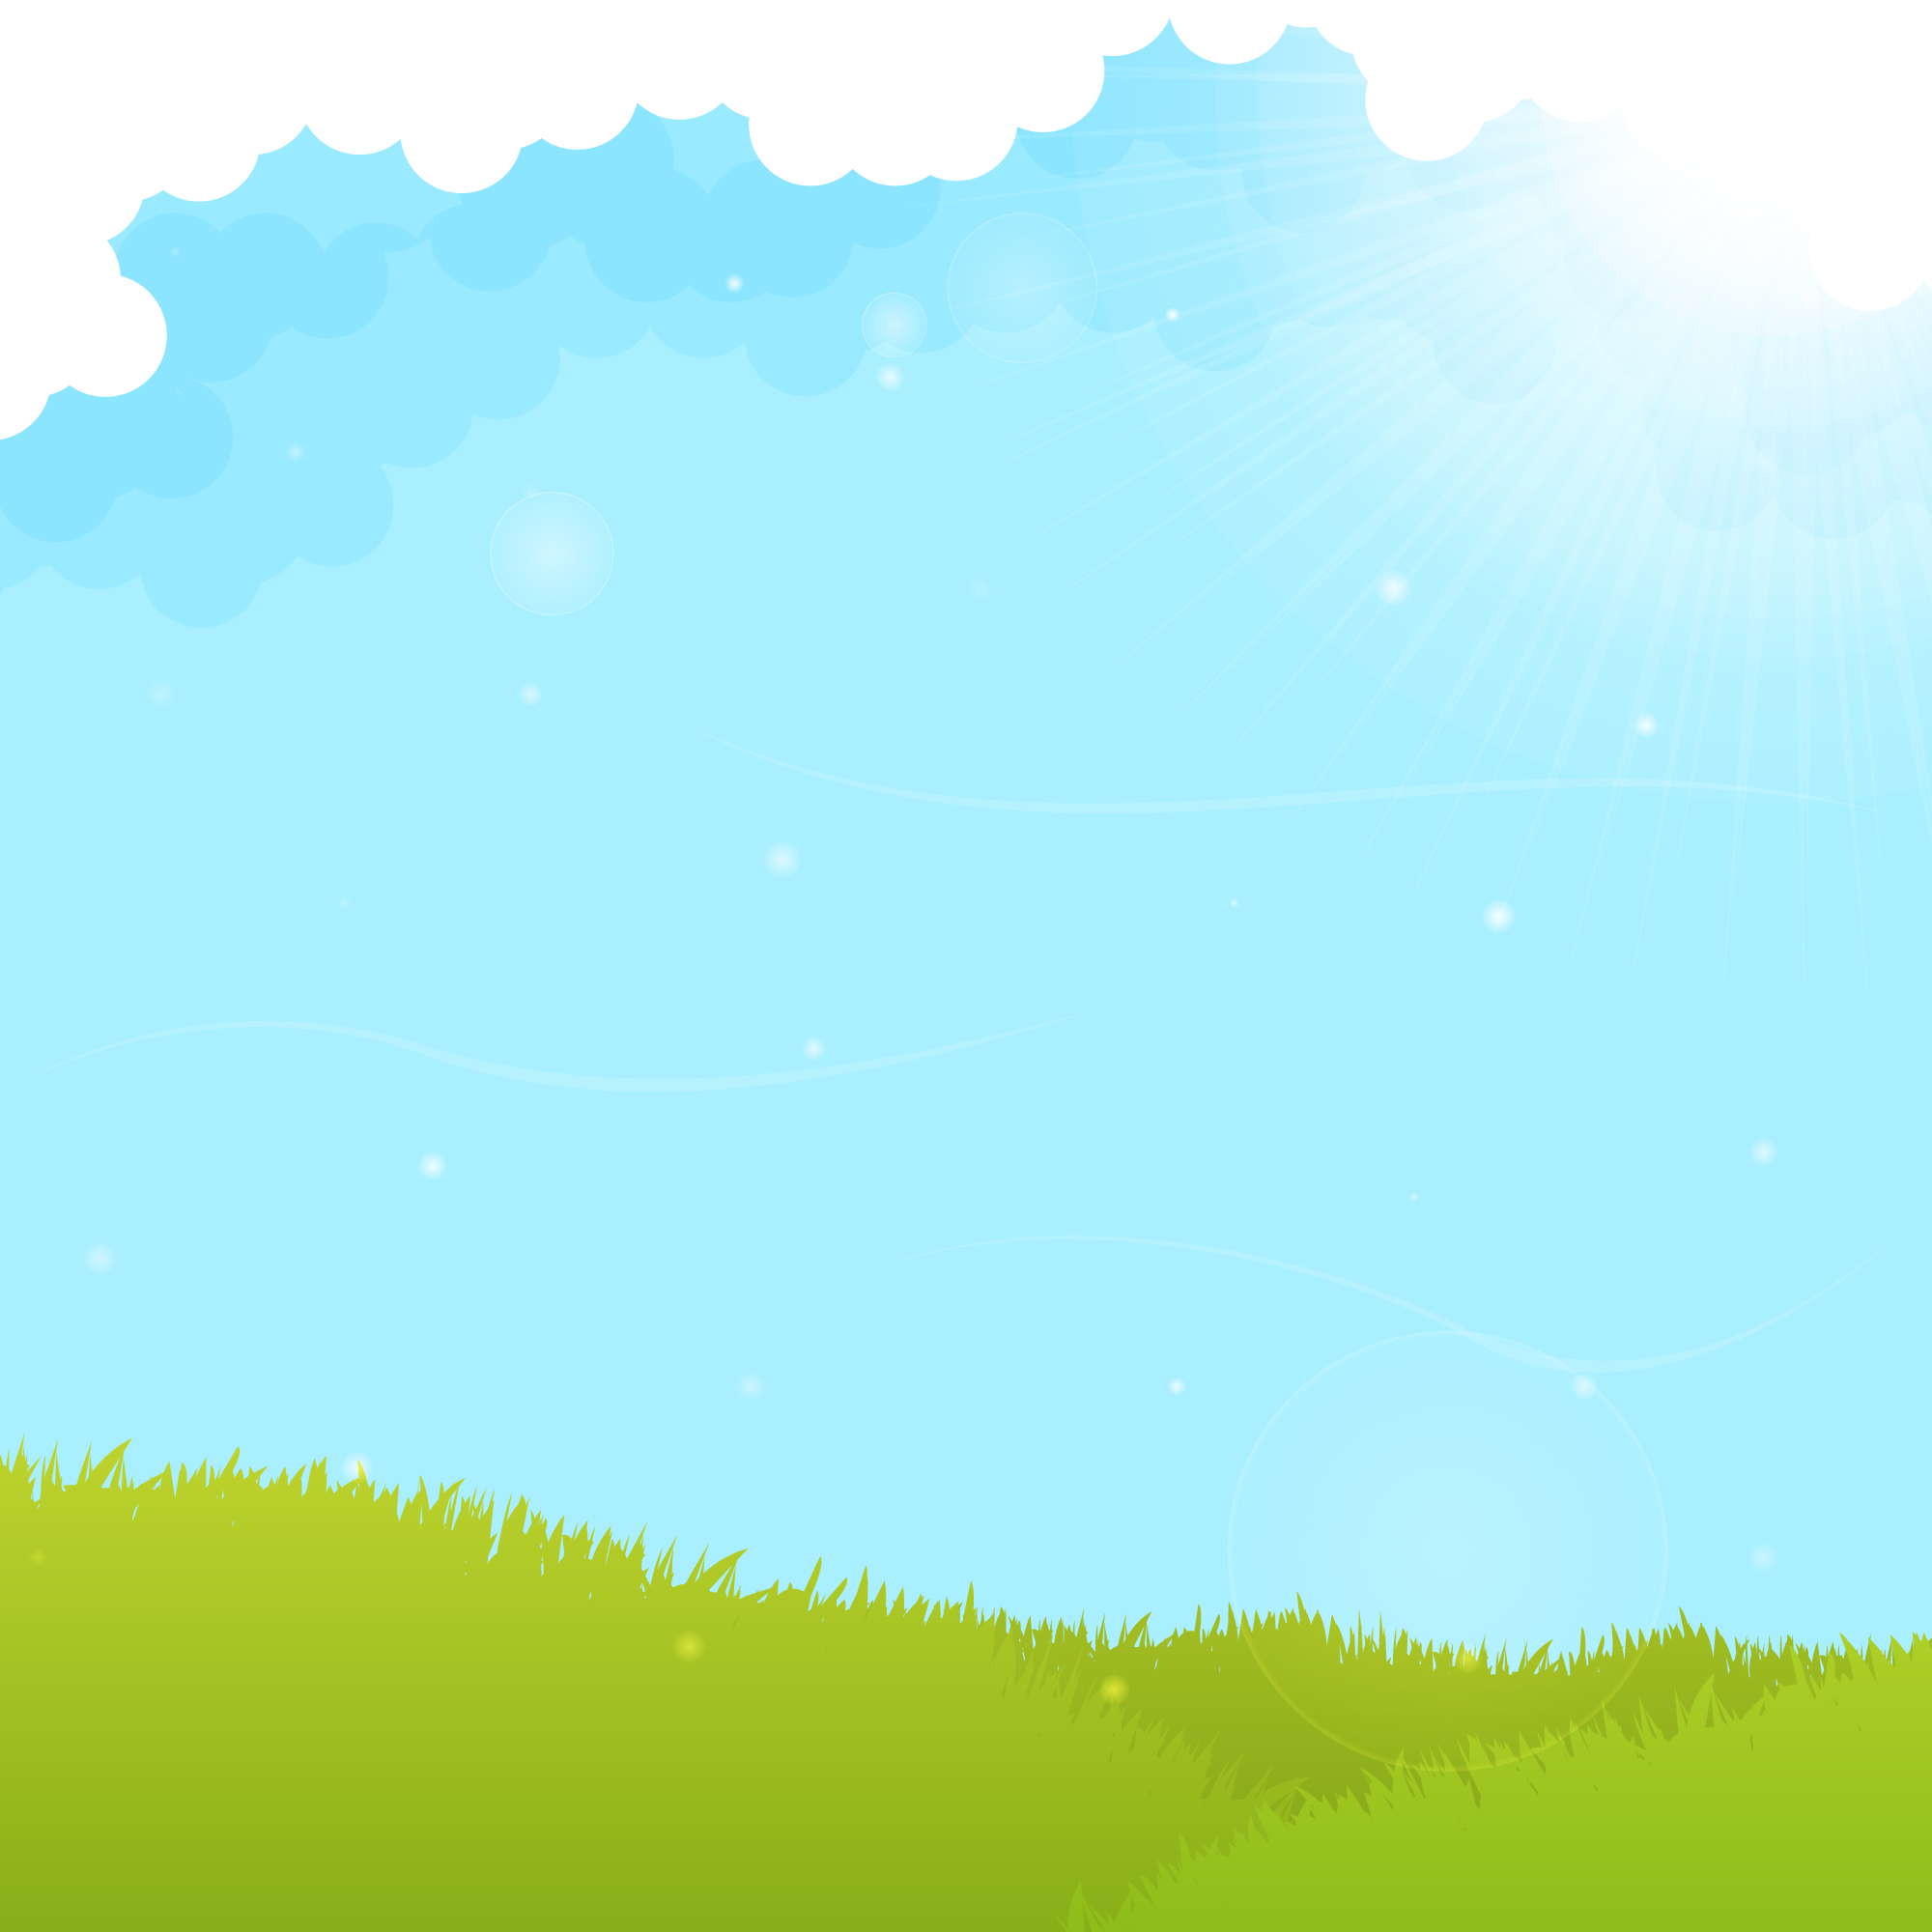 Green field and blue sky background